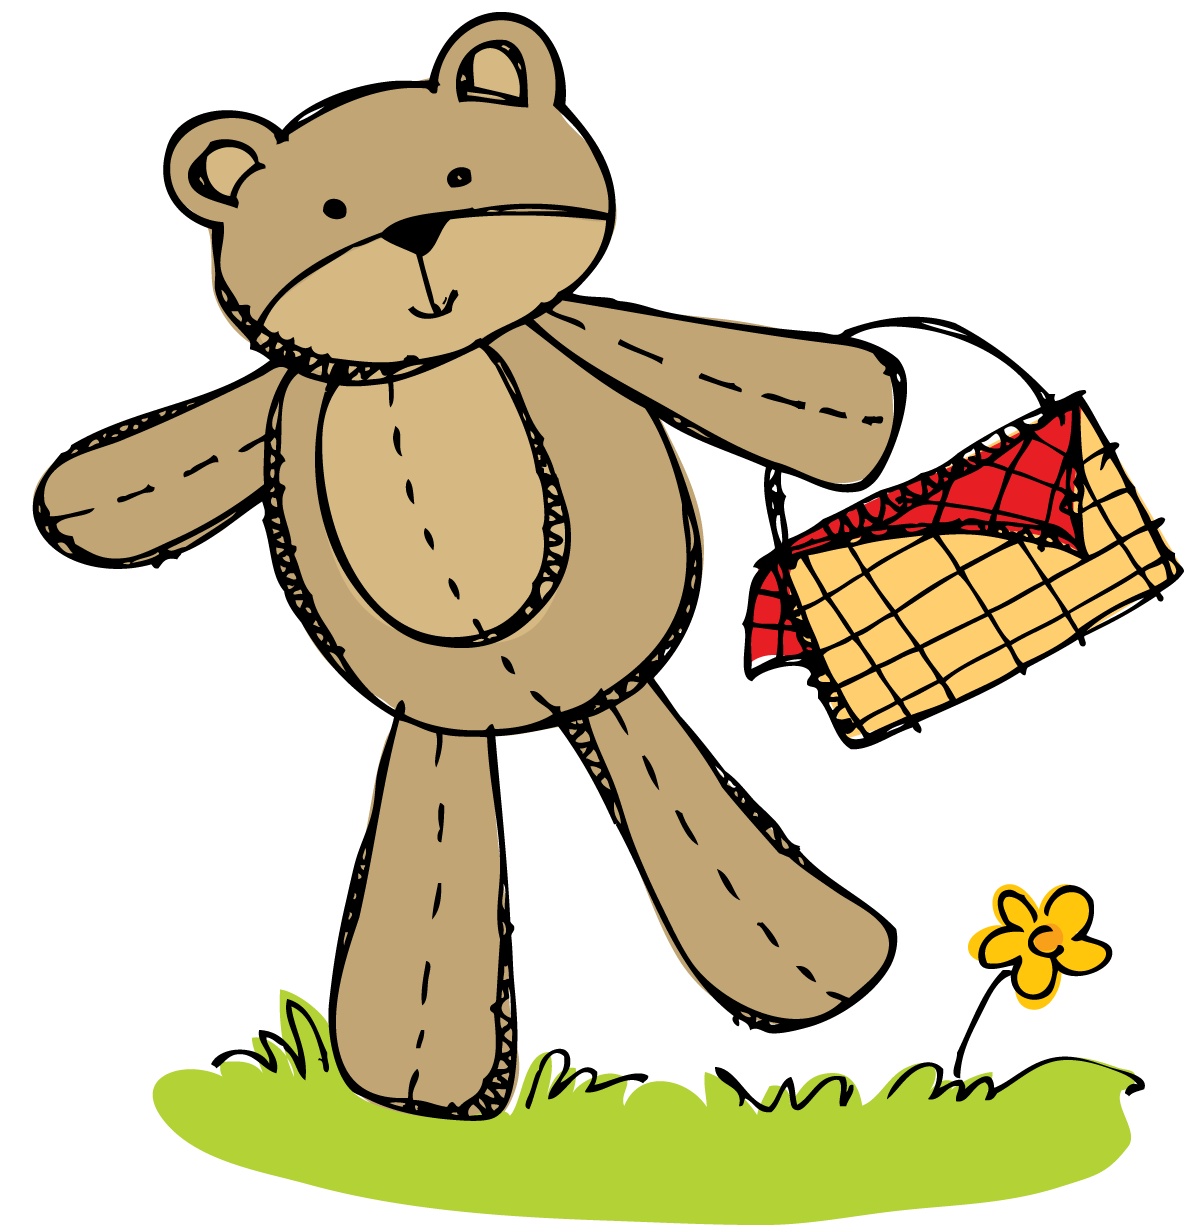 clipart free download Busy bees freebie invitation. Teddy bear picnic clipart